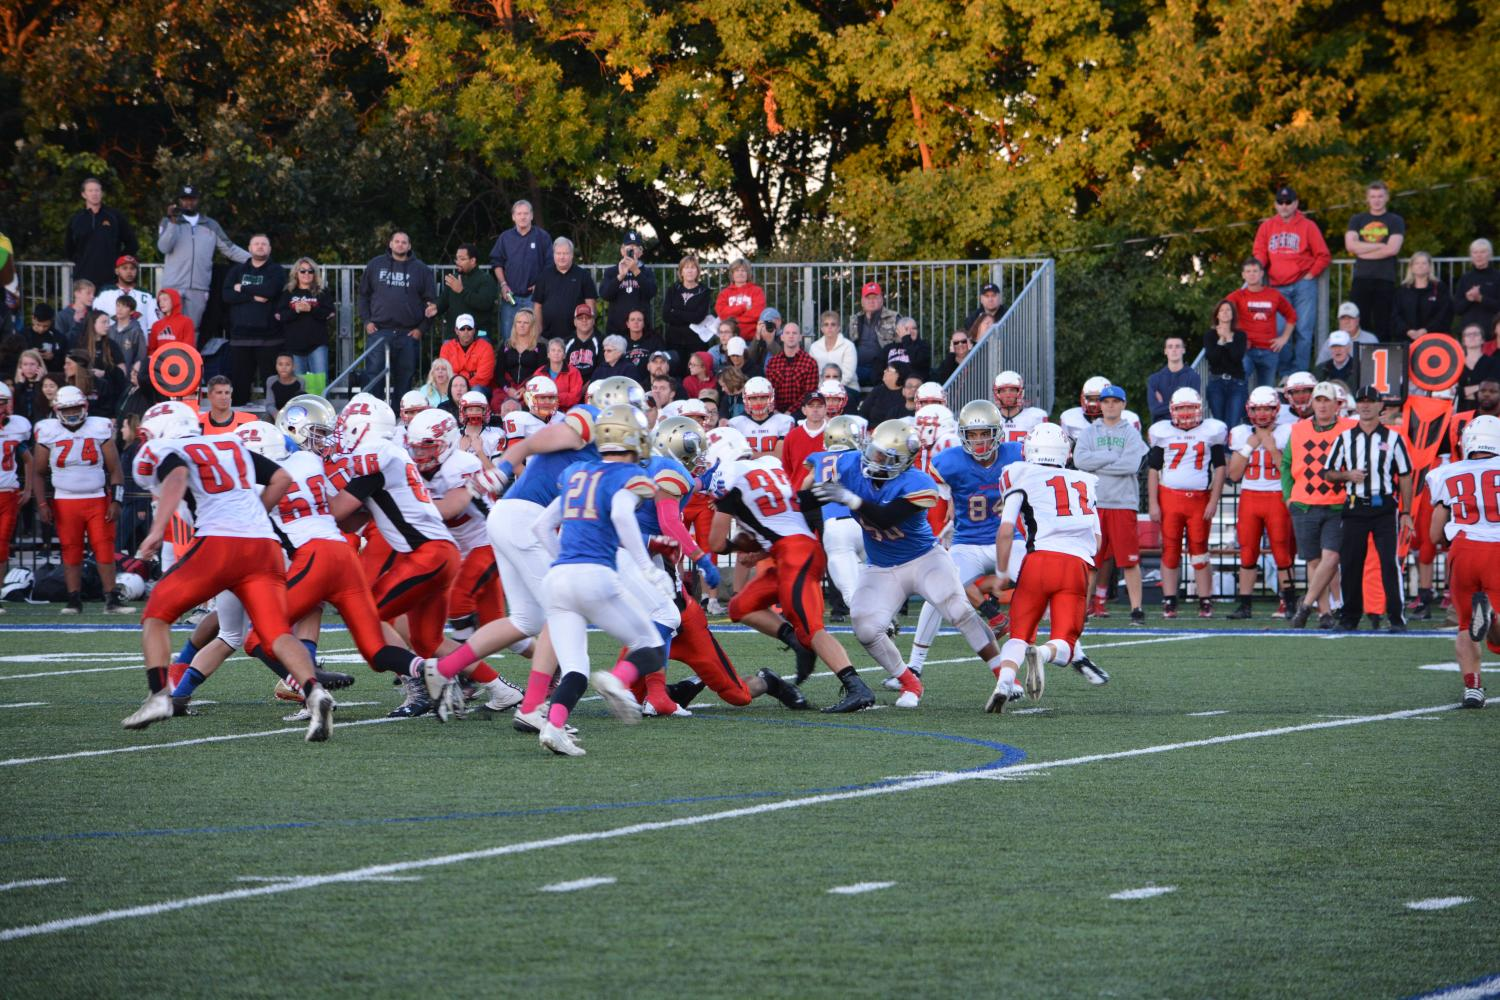 Massive pile up between Crusader's Offense and Wolfpack defense